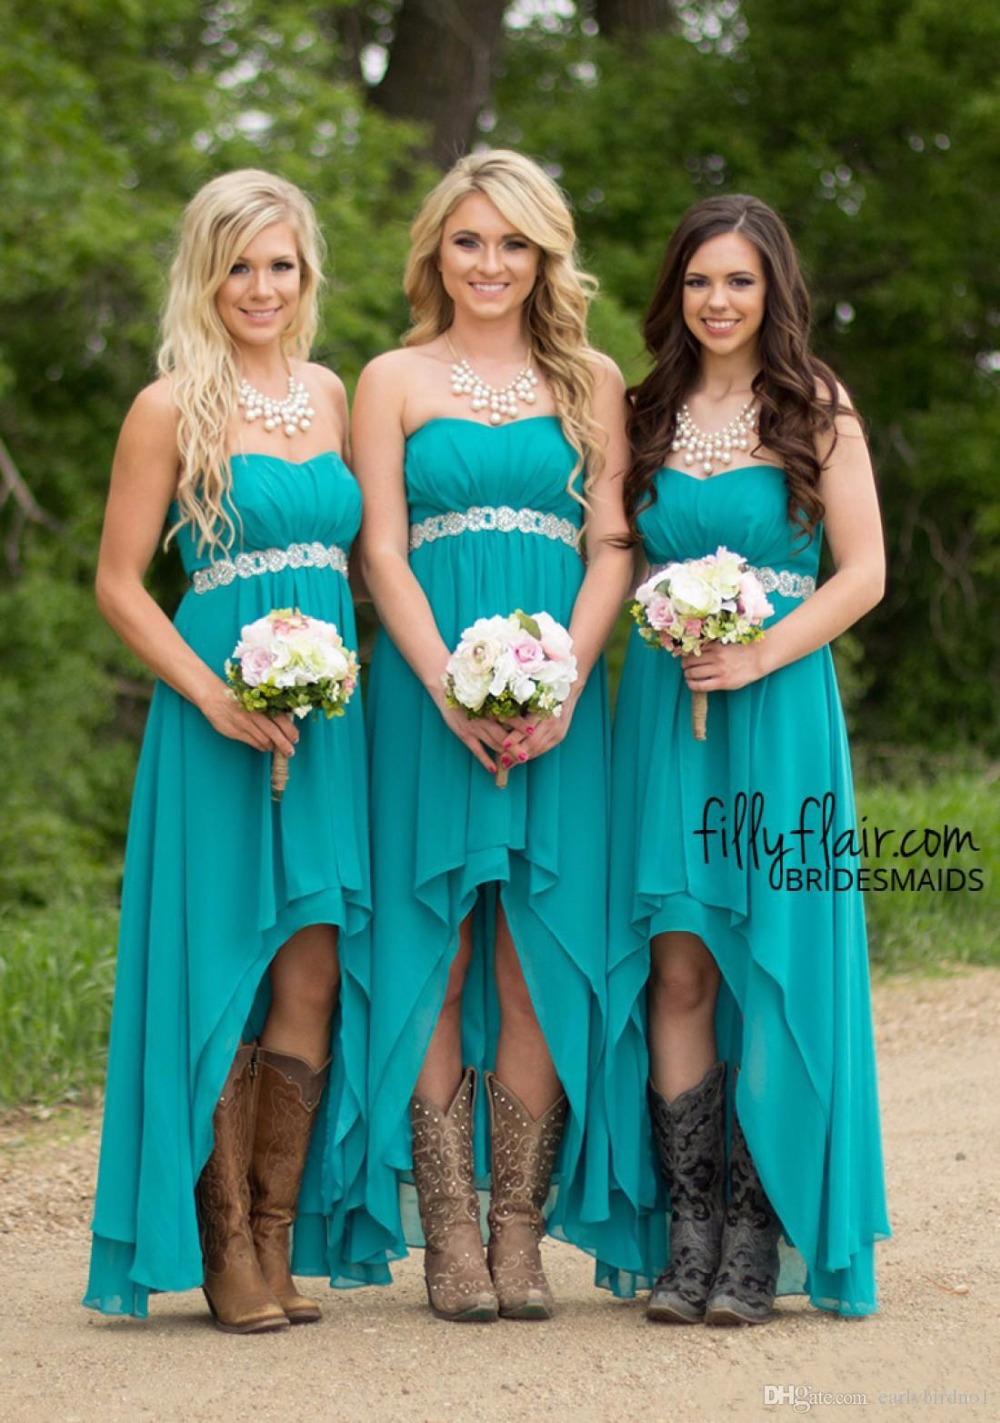 Cecelle 2019 Turquoise High Low Country Rustic Bridesmaid Dresses Strapless Cheap Chiffon Maid of Honor Gowns Custom Made Sale